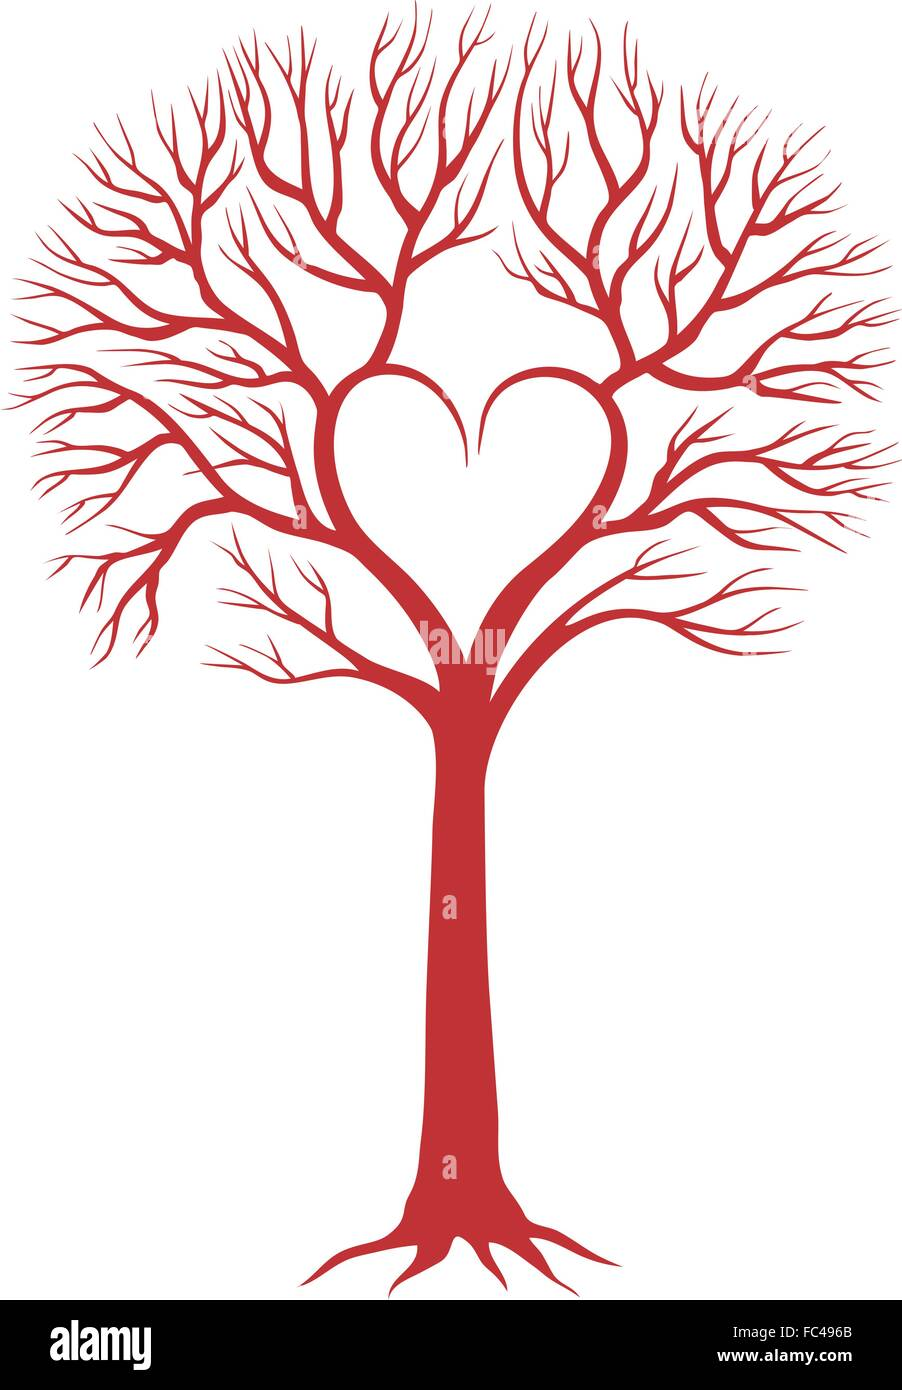 red love tree with heart shaped branches for wedding invitations ...